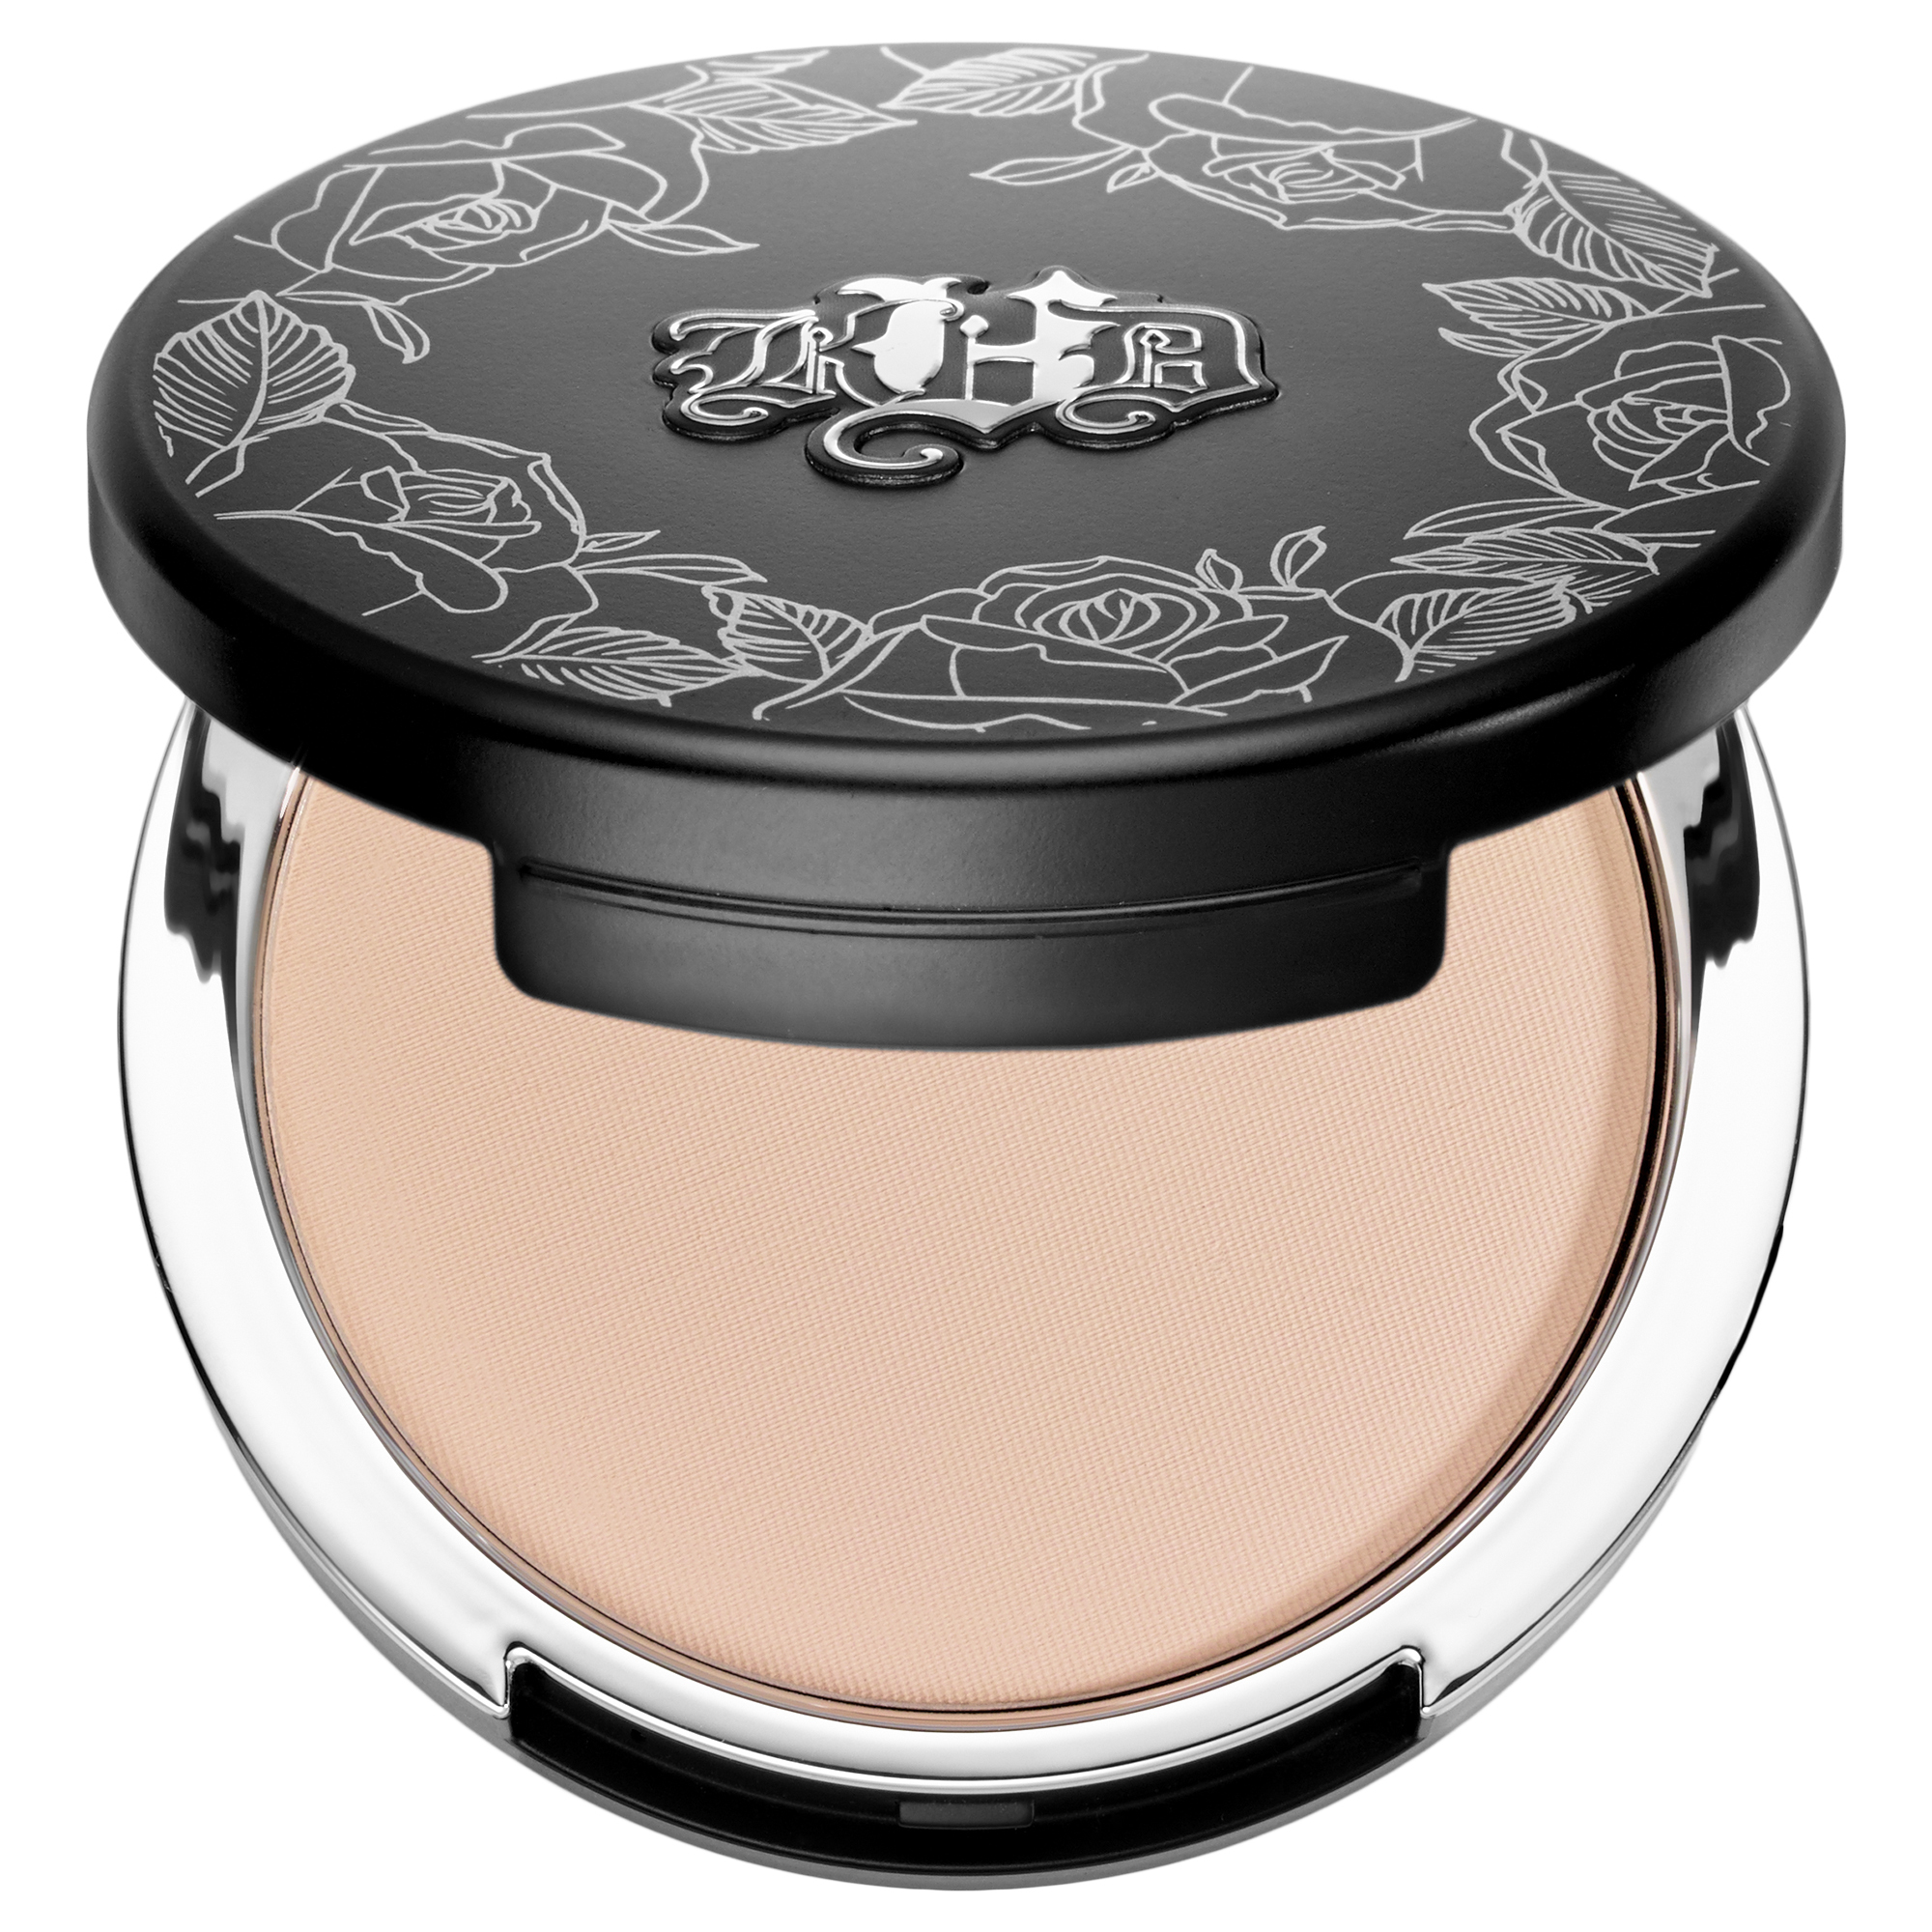 Lock-It Powder Foundation